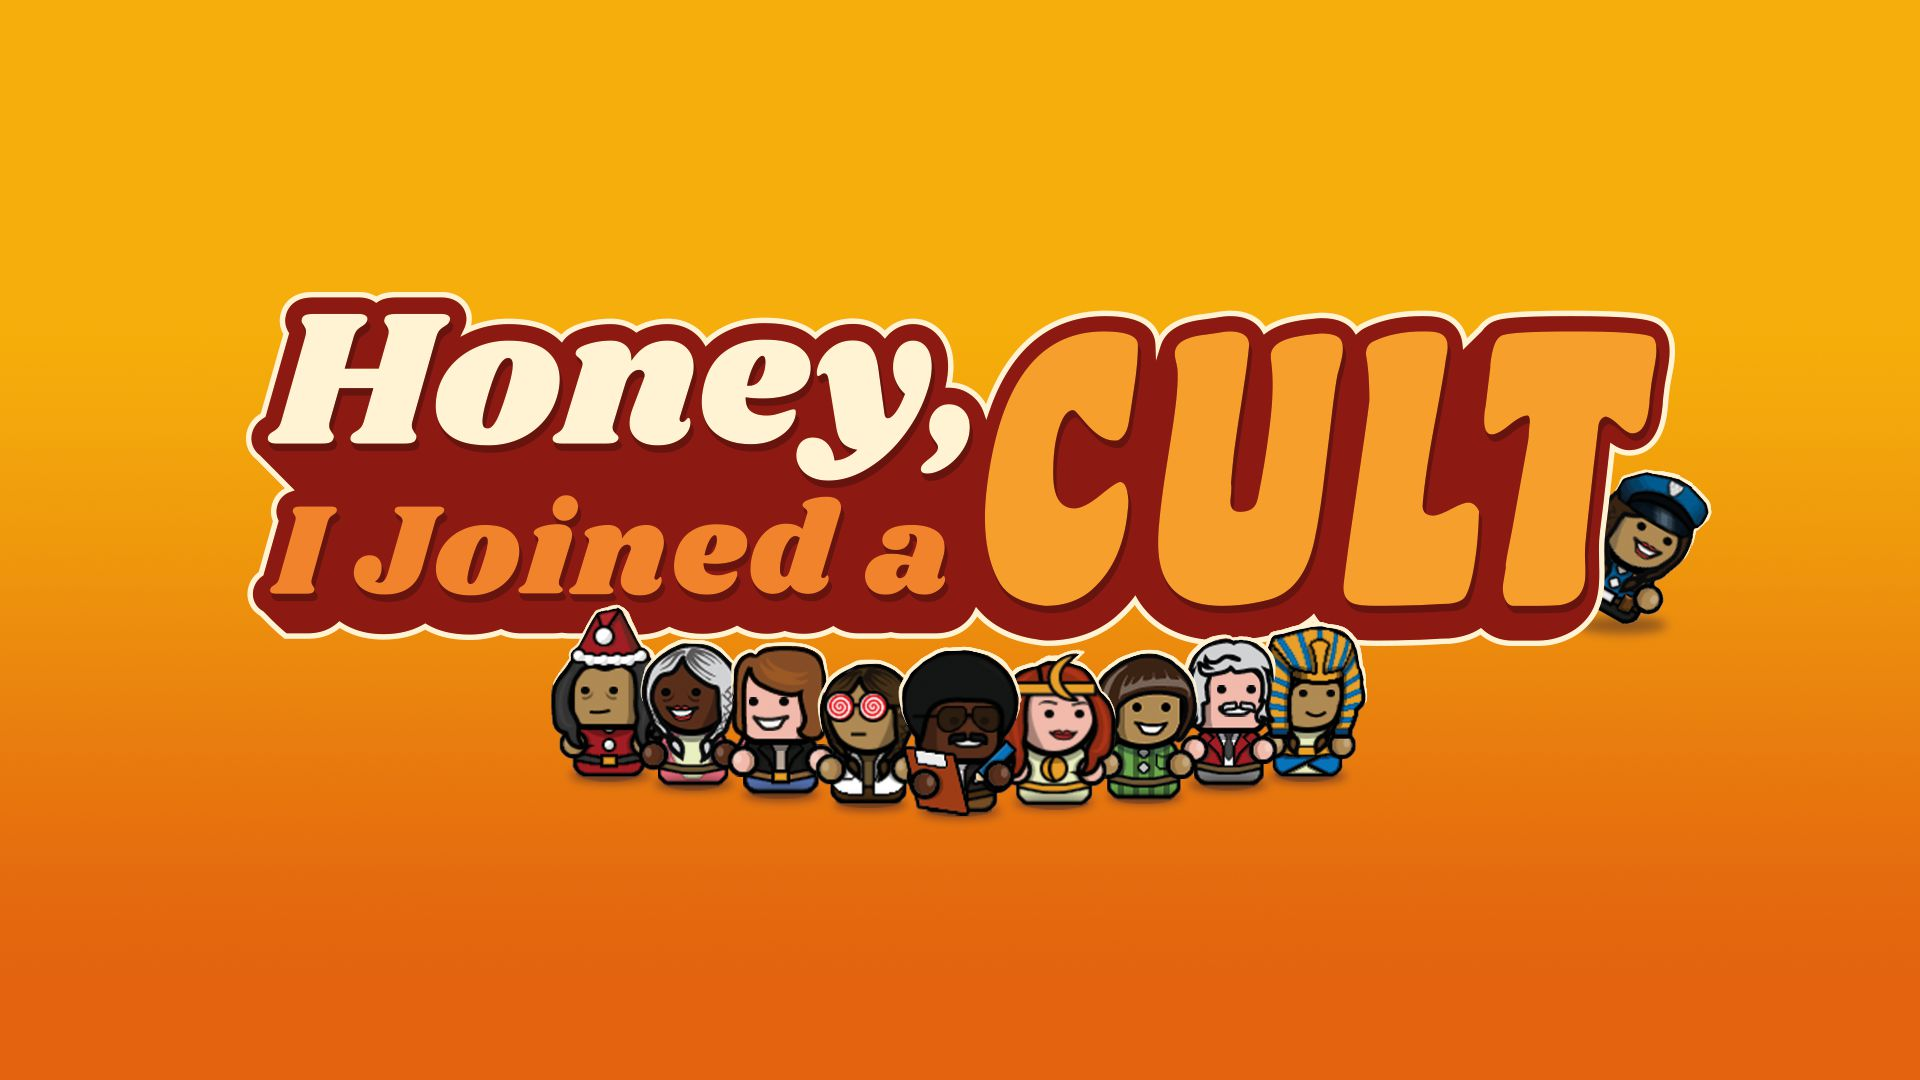 Honey, I Joined a Cult Principal